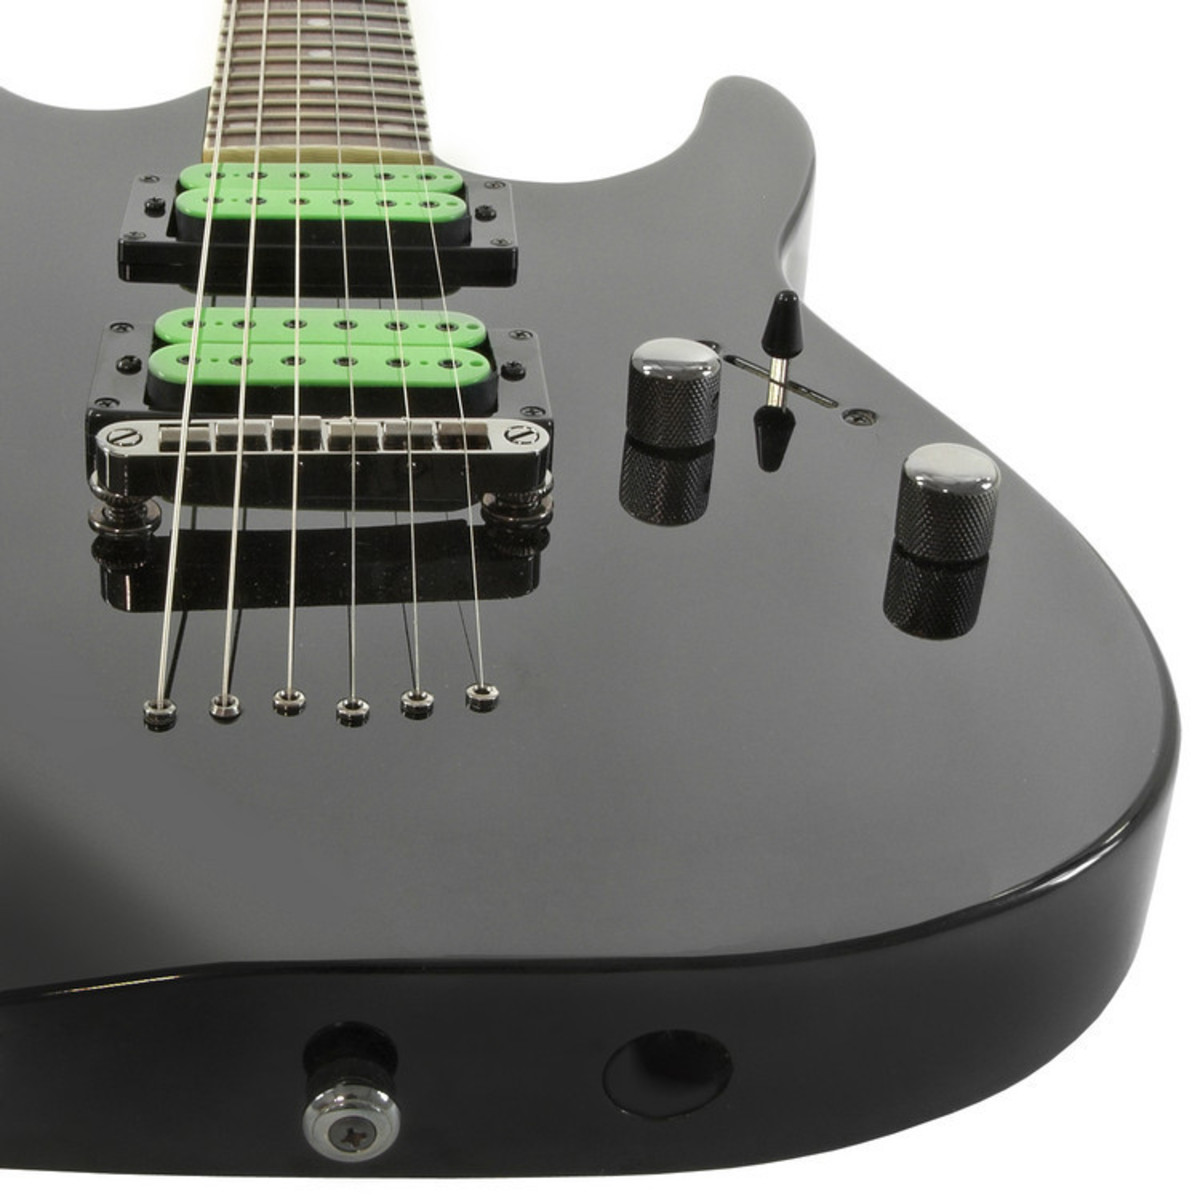 rocksmith xbox 360 black knight cl 22 electric guitar black at gear4music. Black Bedroom Furniture Sets. Home Design Ideas